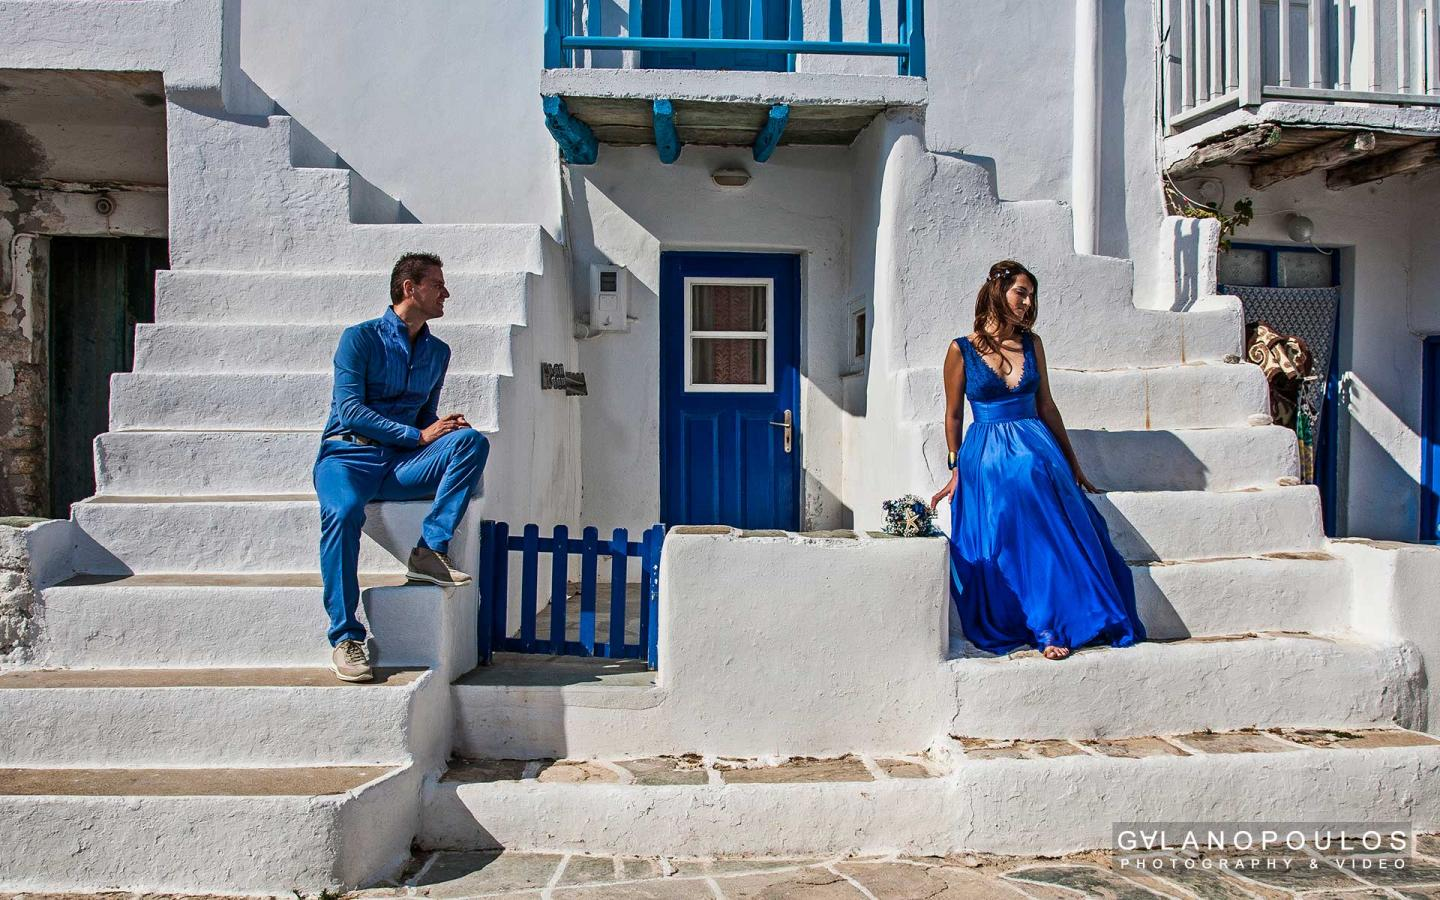 Santorini Weddings through Galanopoulos camera Tie the Knot in 1440x900